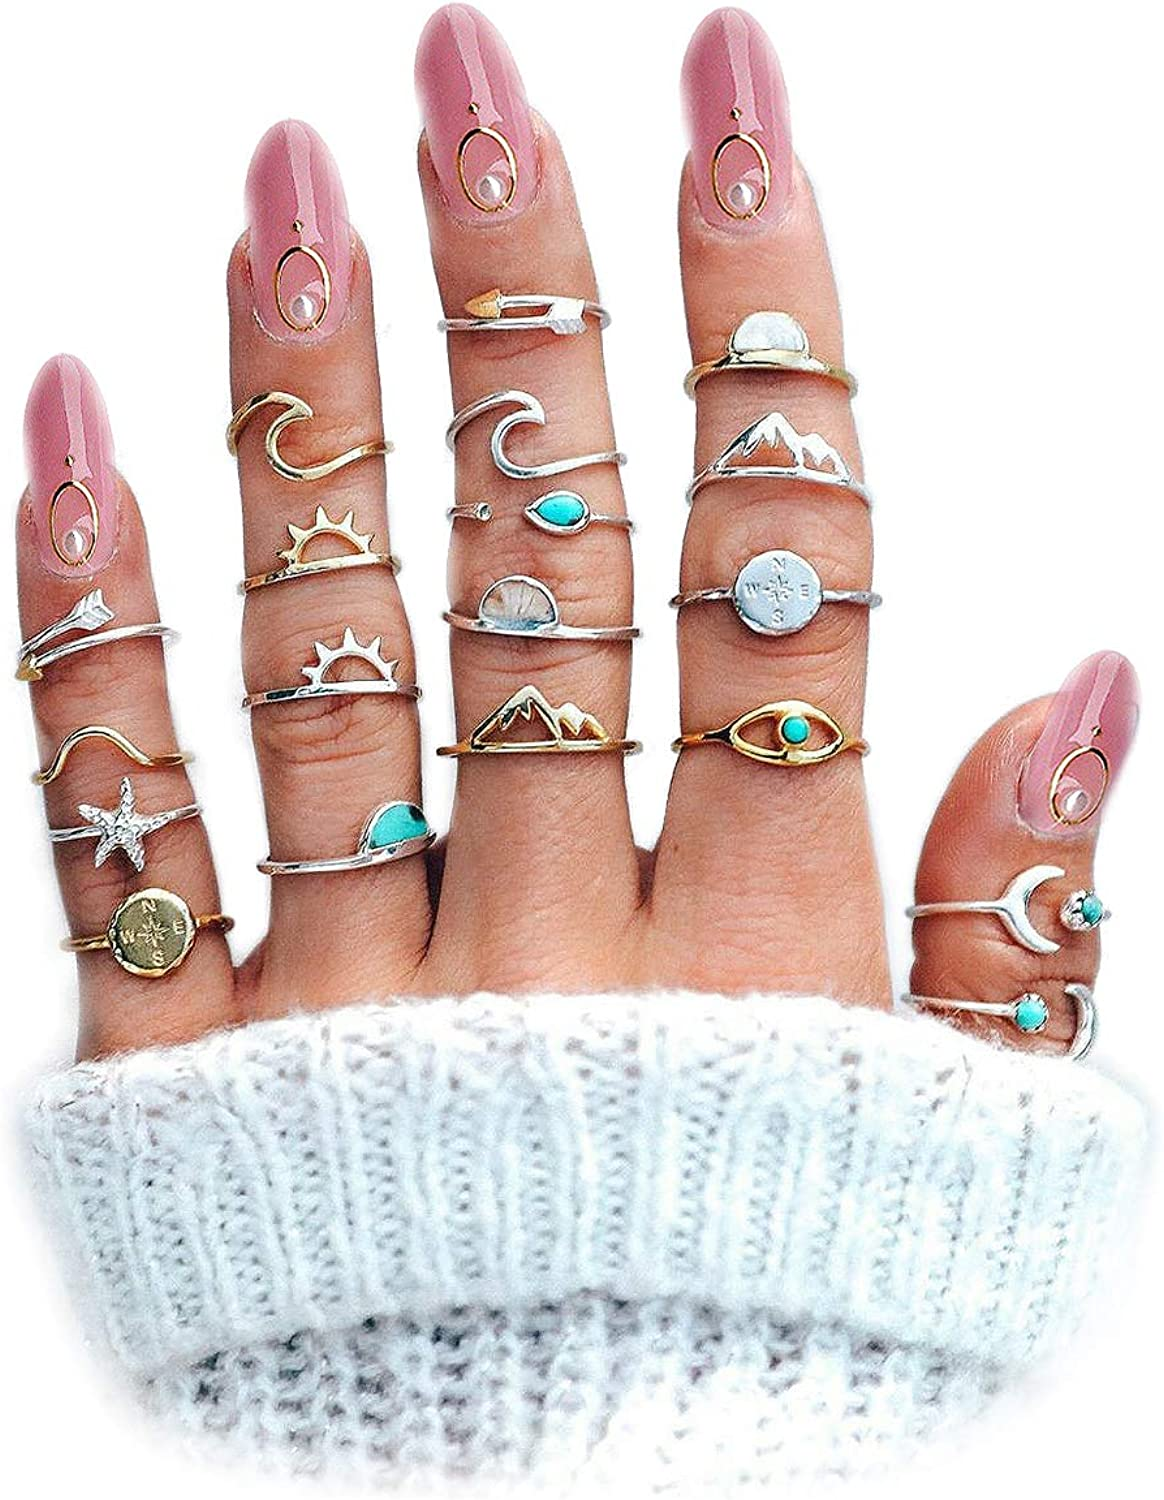 Boho Retro Stackable Rings Sets for Teen Girls Women,Peak Sea Wave Compass Turquoise Rhinestone Knuckle Joint Finger Kunckle Nail Ring Sets